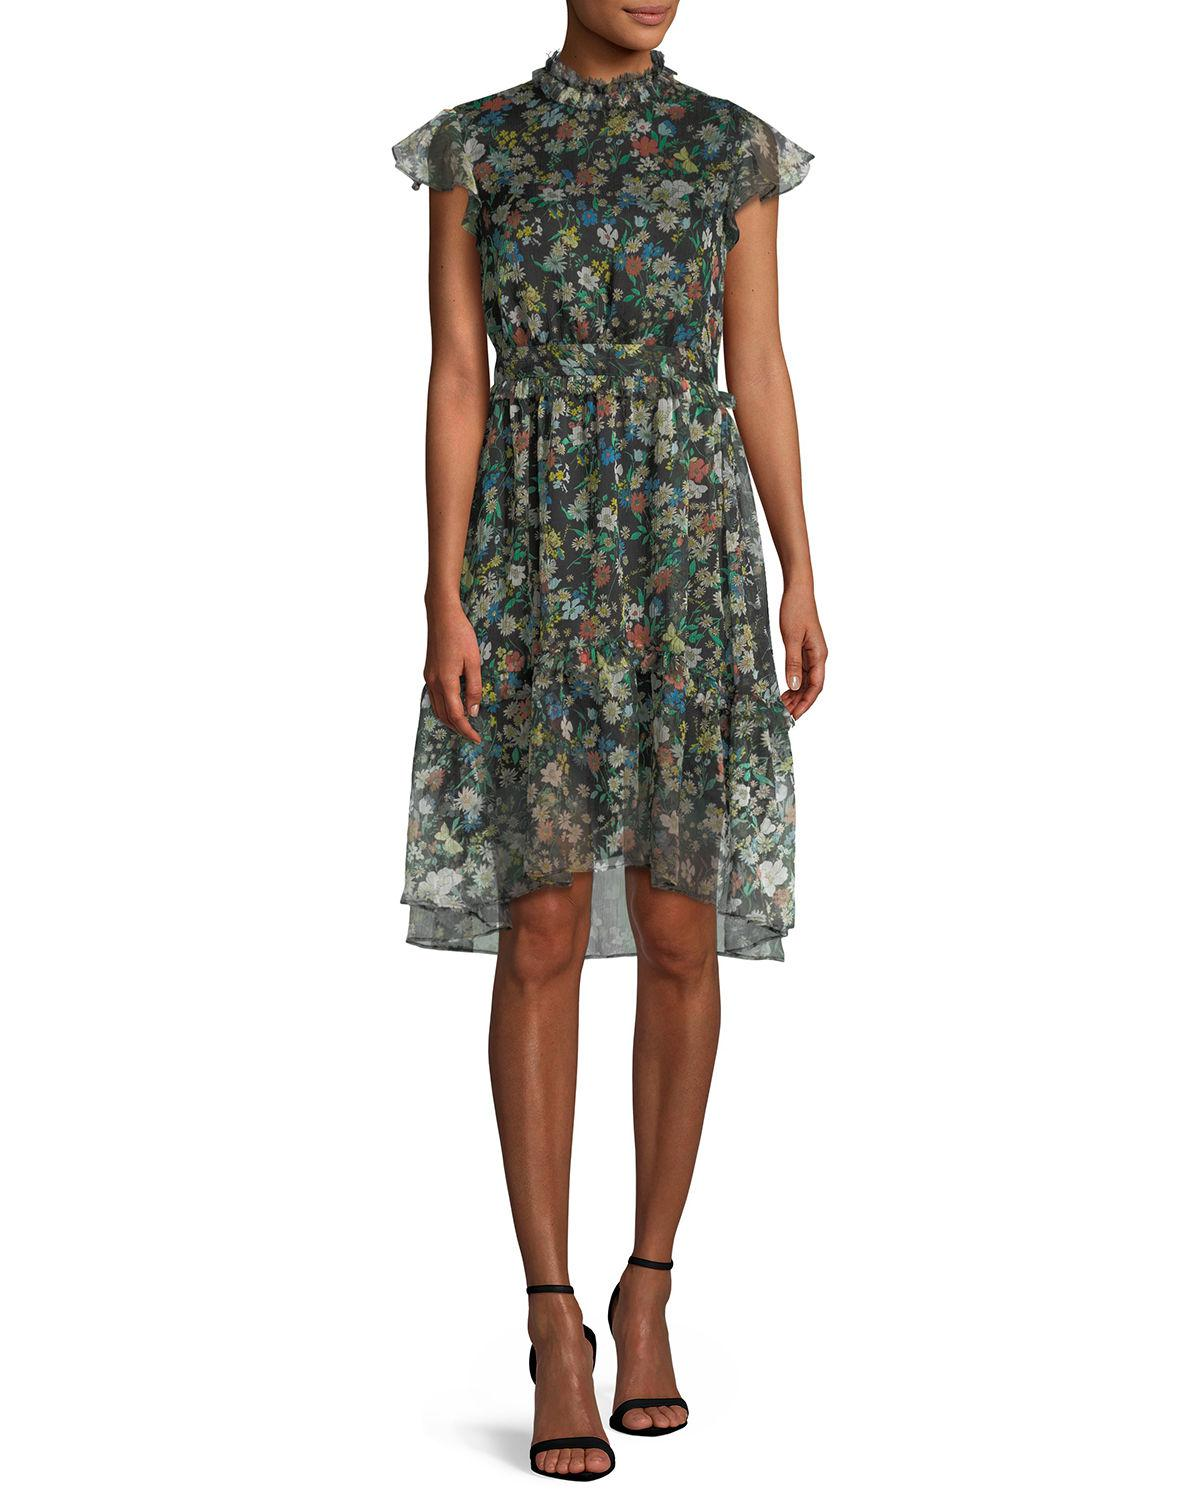 7a7fd7be6901 Kendall + Kylie Floral-print Ruffle Knee-length Dress in Black - Lyst